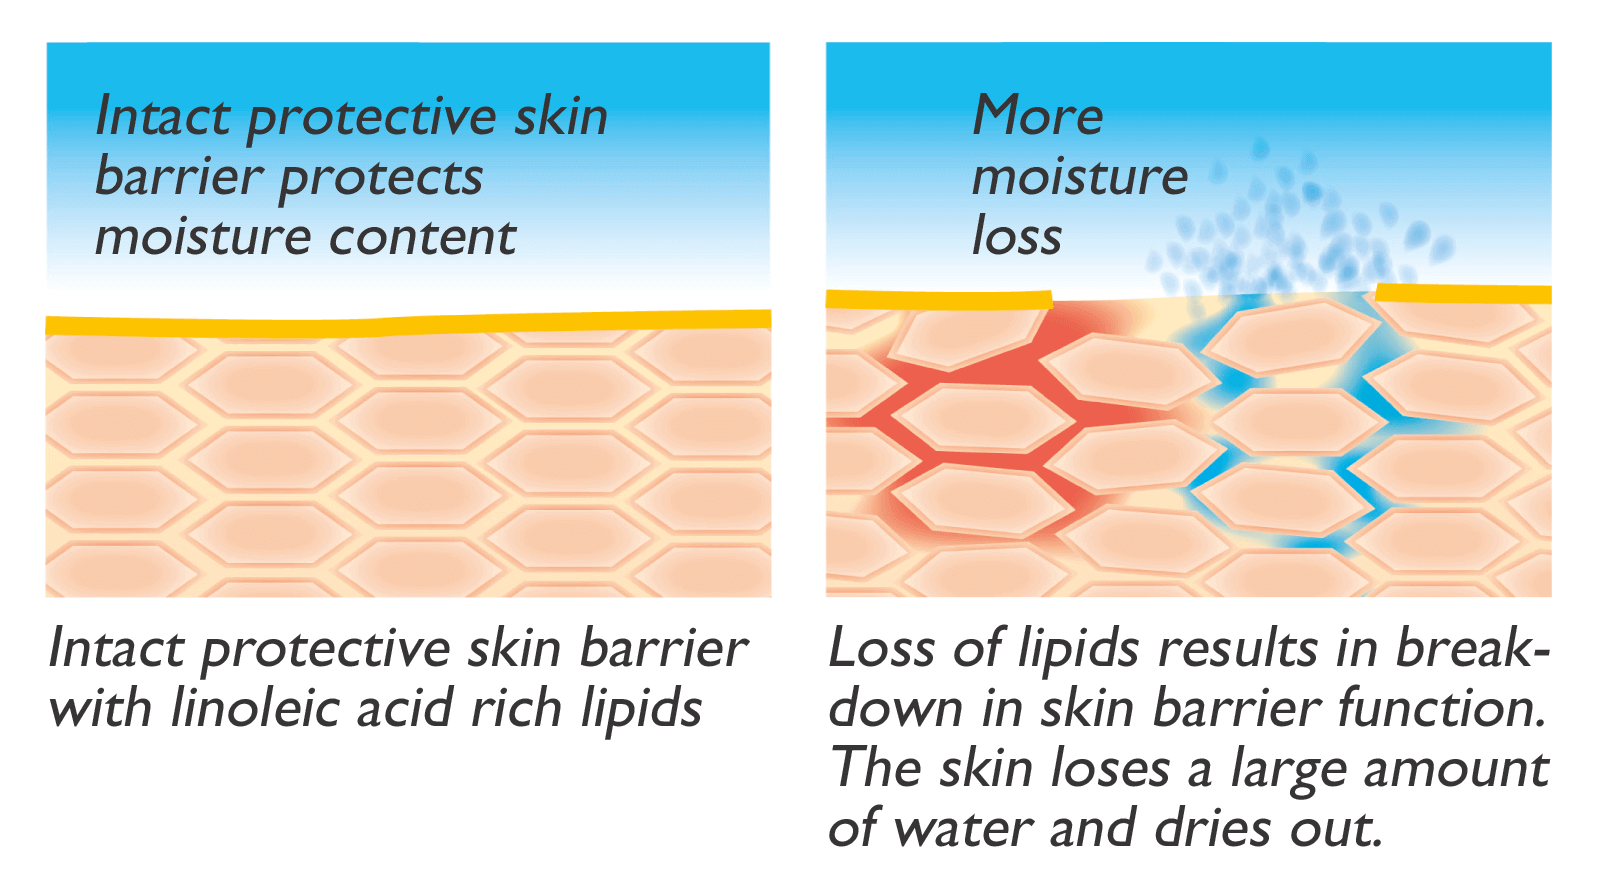 if, however, the structural lipids and moisture retention factors are  stripped away due to frequent bathing, showering or swimming, or are no  longer